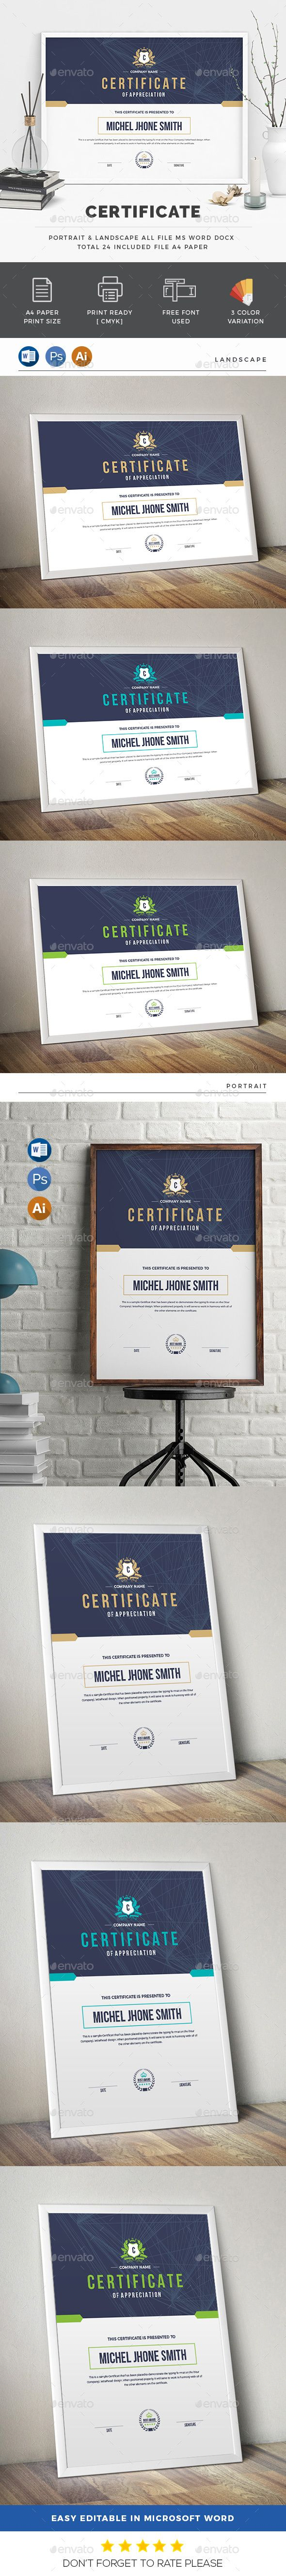 The 25 best certificate design ideas on pinterest certificate certificate by generousart features of certificate template color paper size with bleeds quick and easy to customize templateschange customize eas yelopaper Choice Image